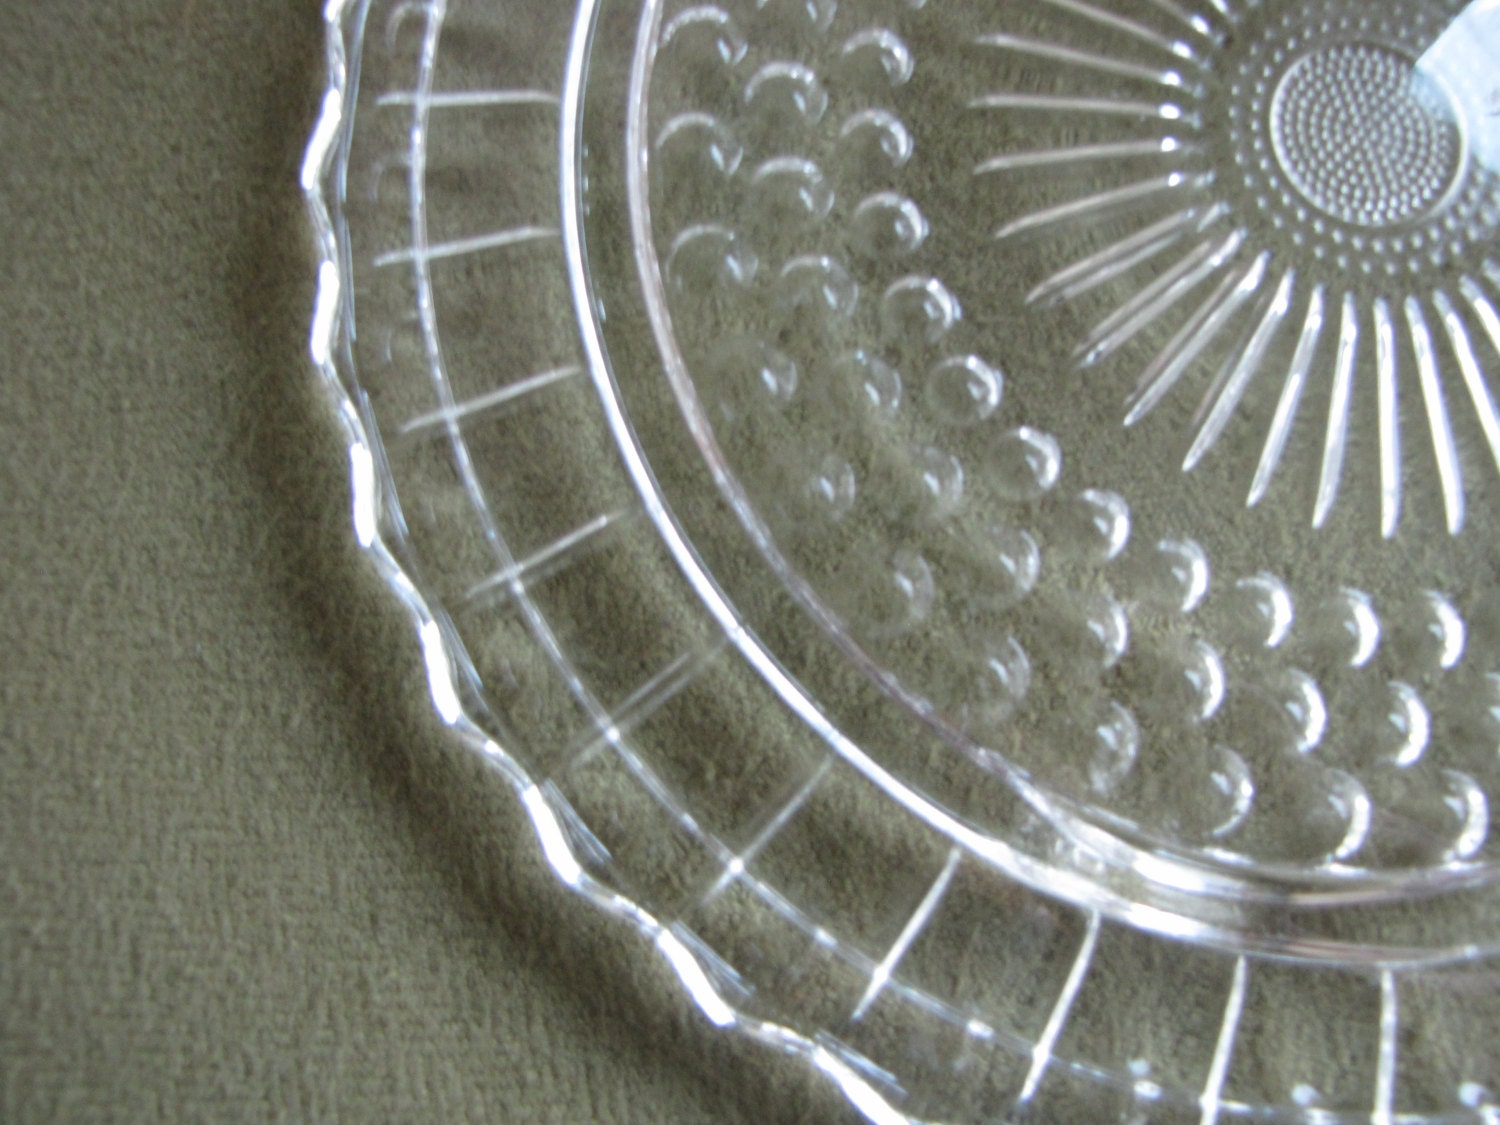 & Vintage Daisy and Bubbles Cake Plate Anchor Hocking Footed Sandwich Tray